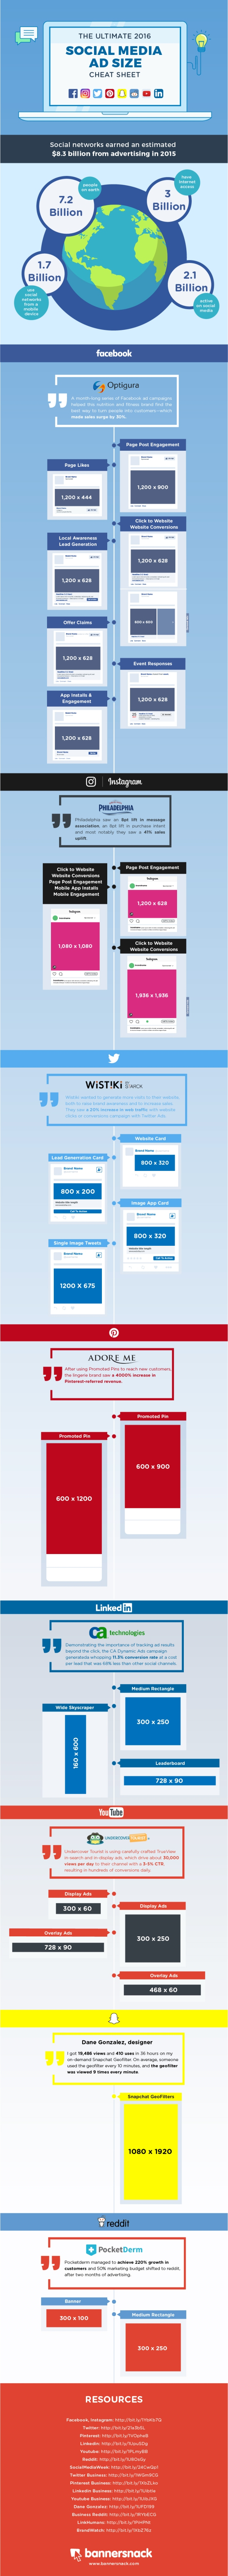 Social Media Advertising The Ultimate Ad Size Cheat Sheet for 2016